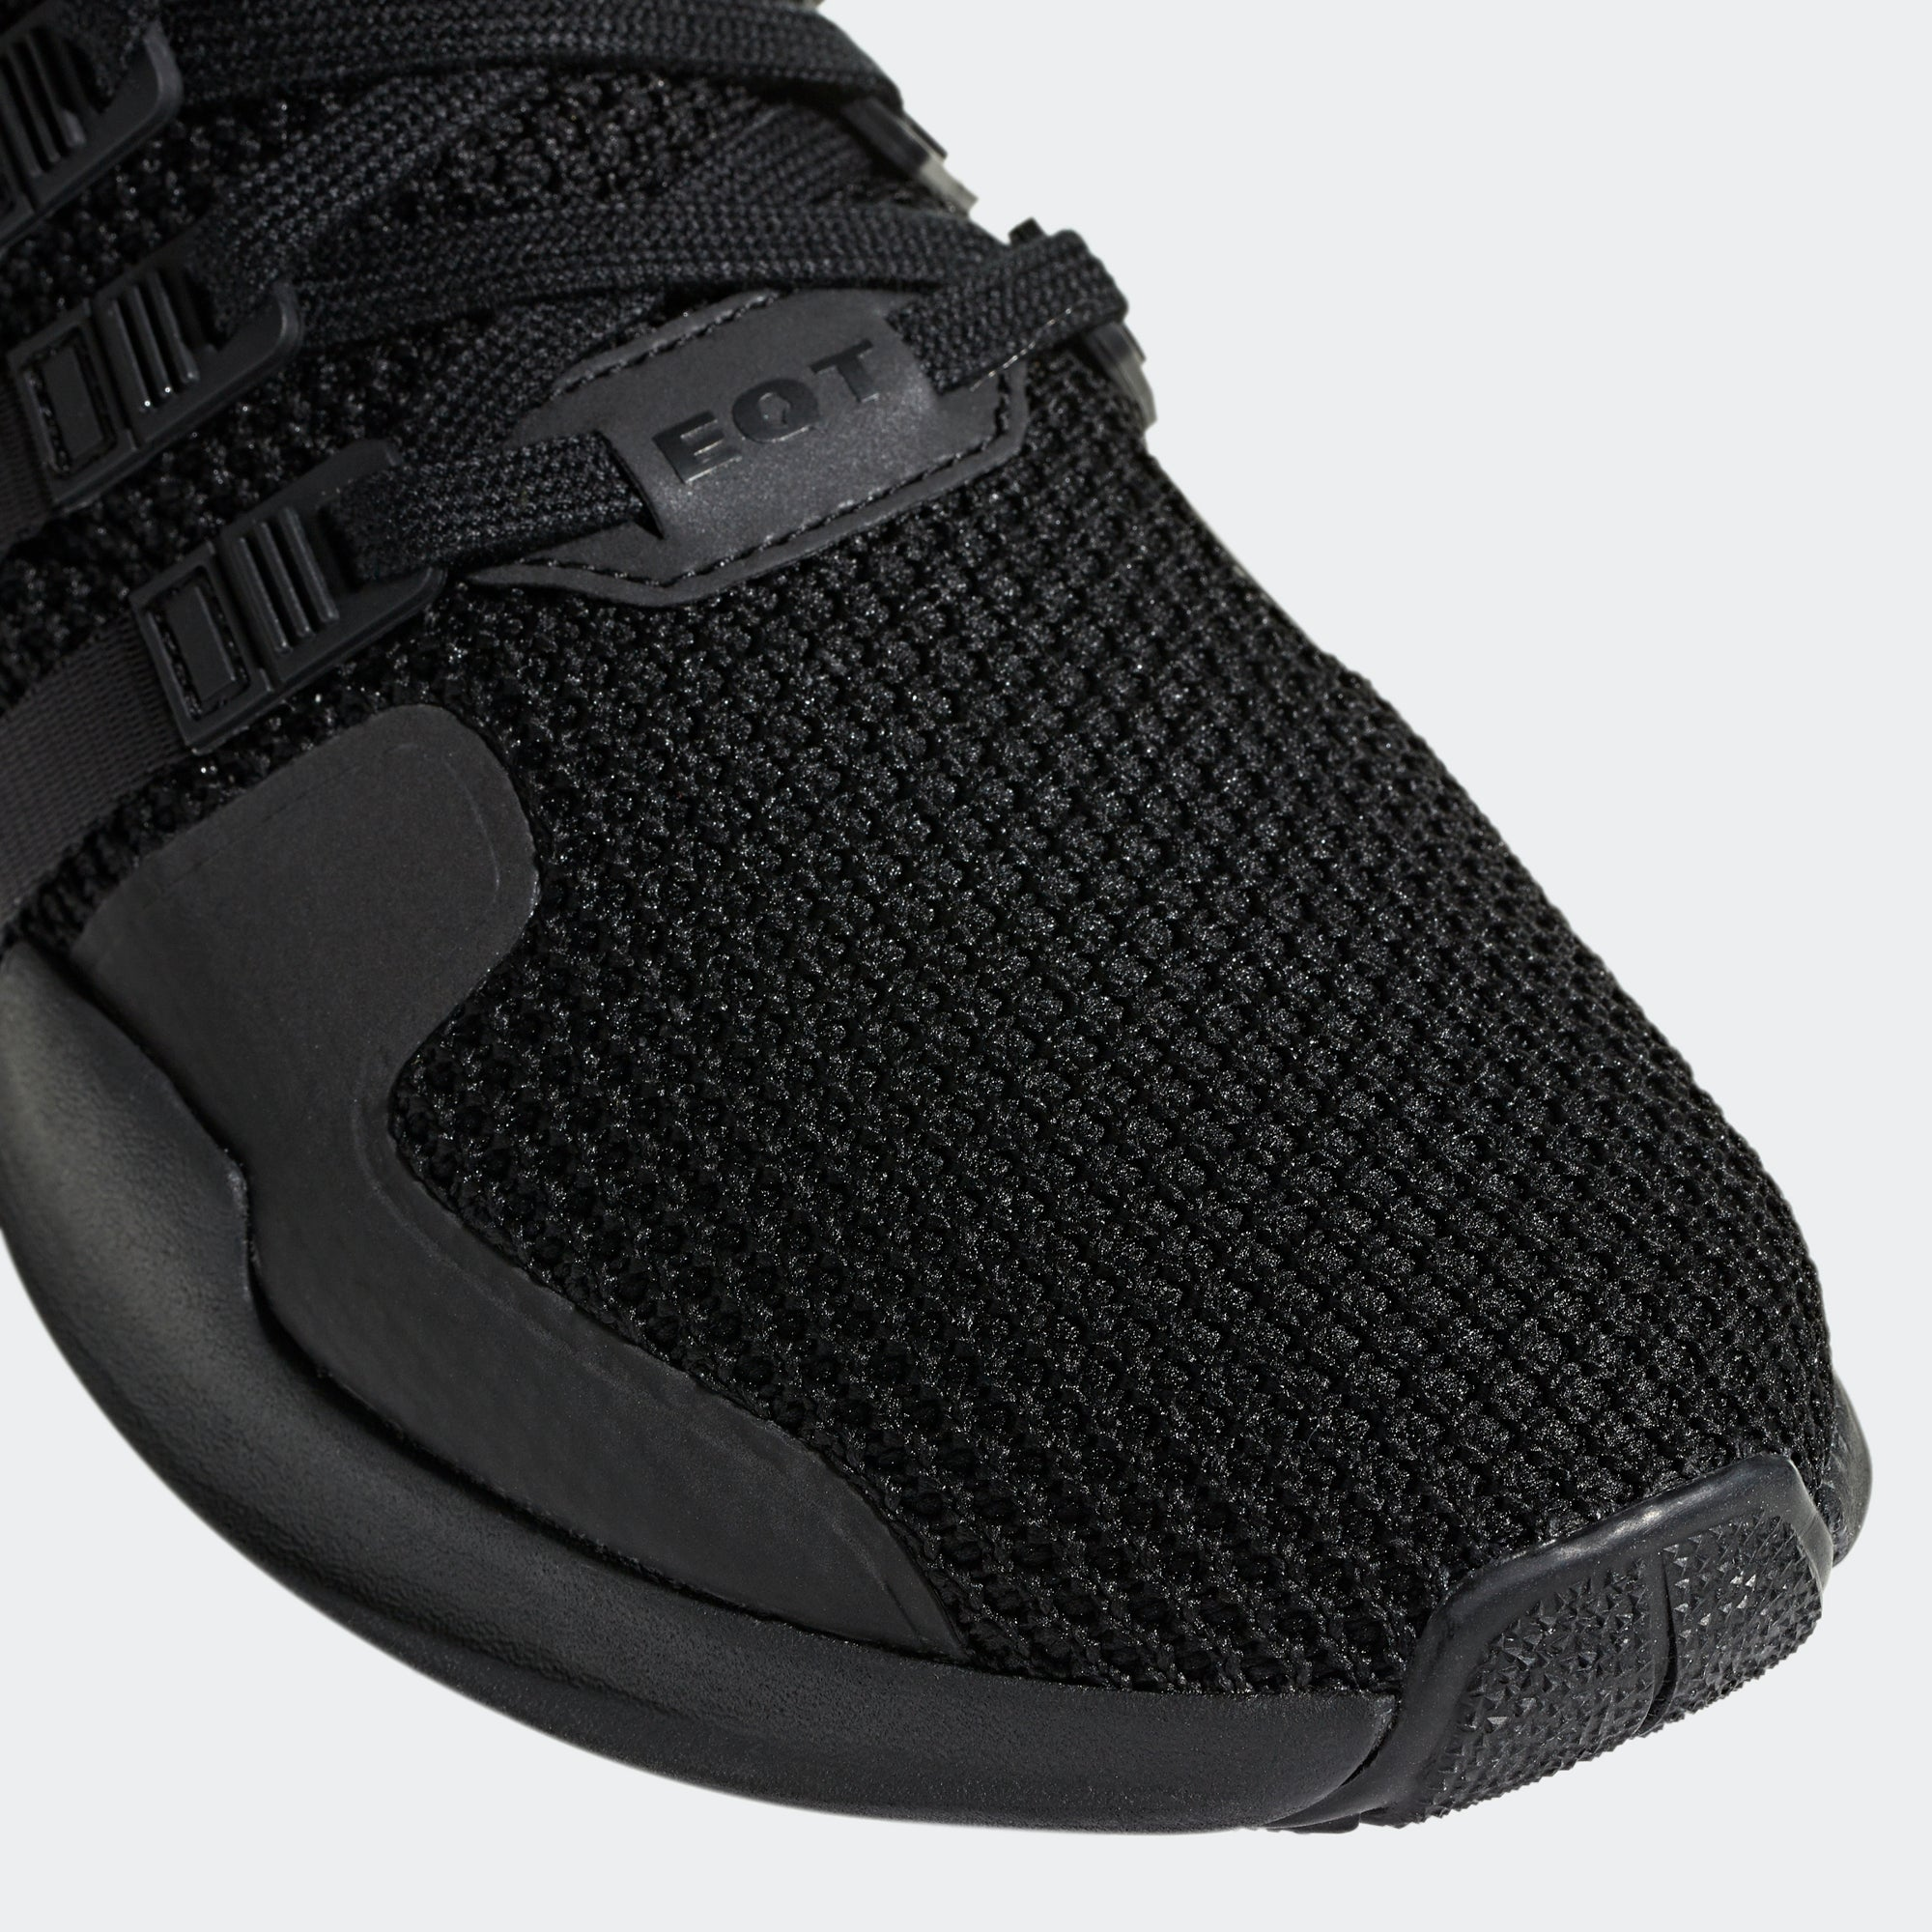 low priced 4bdb3 0639a adidas EQT Support ADV Shoes Triple Black D96771   Chicago ...